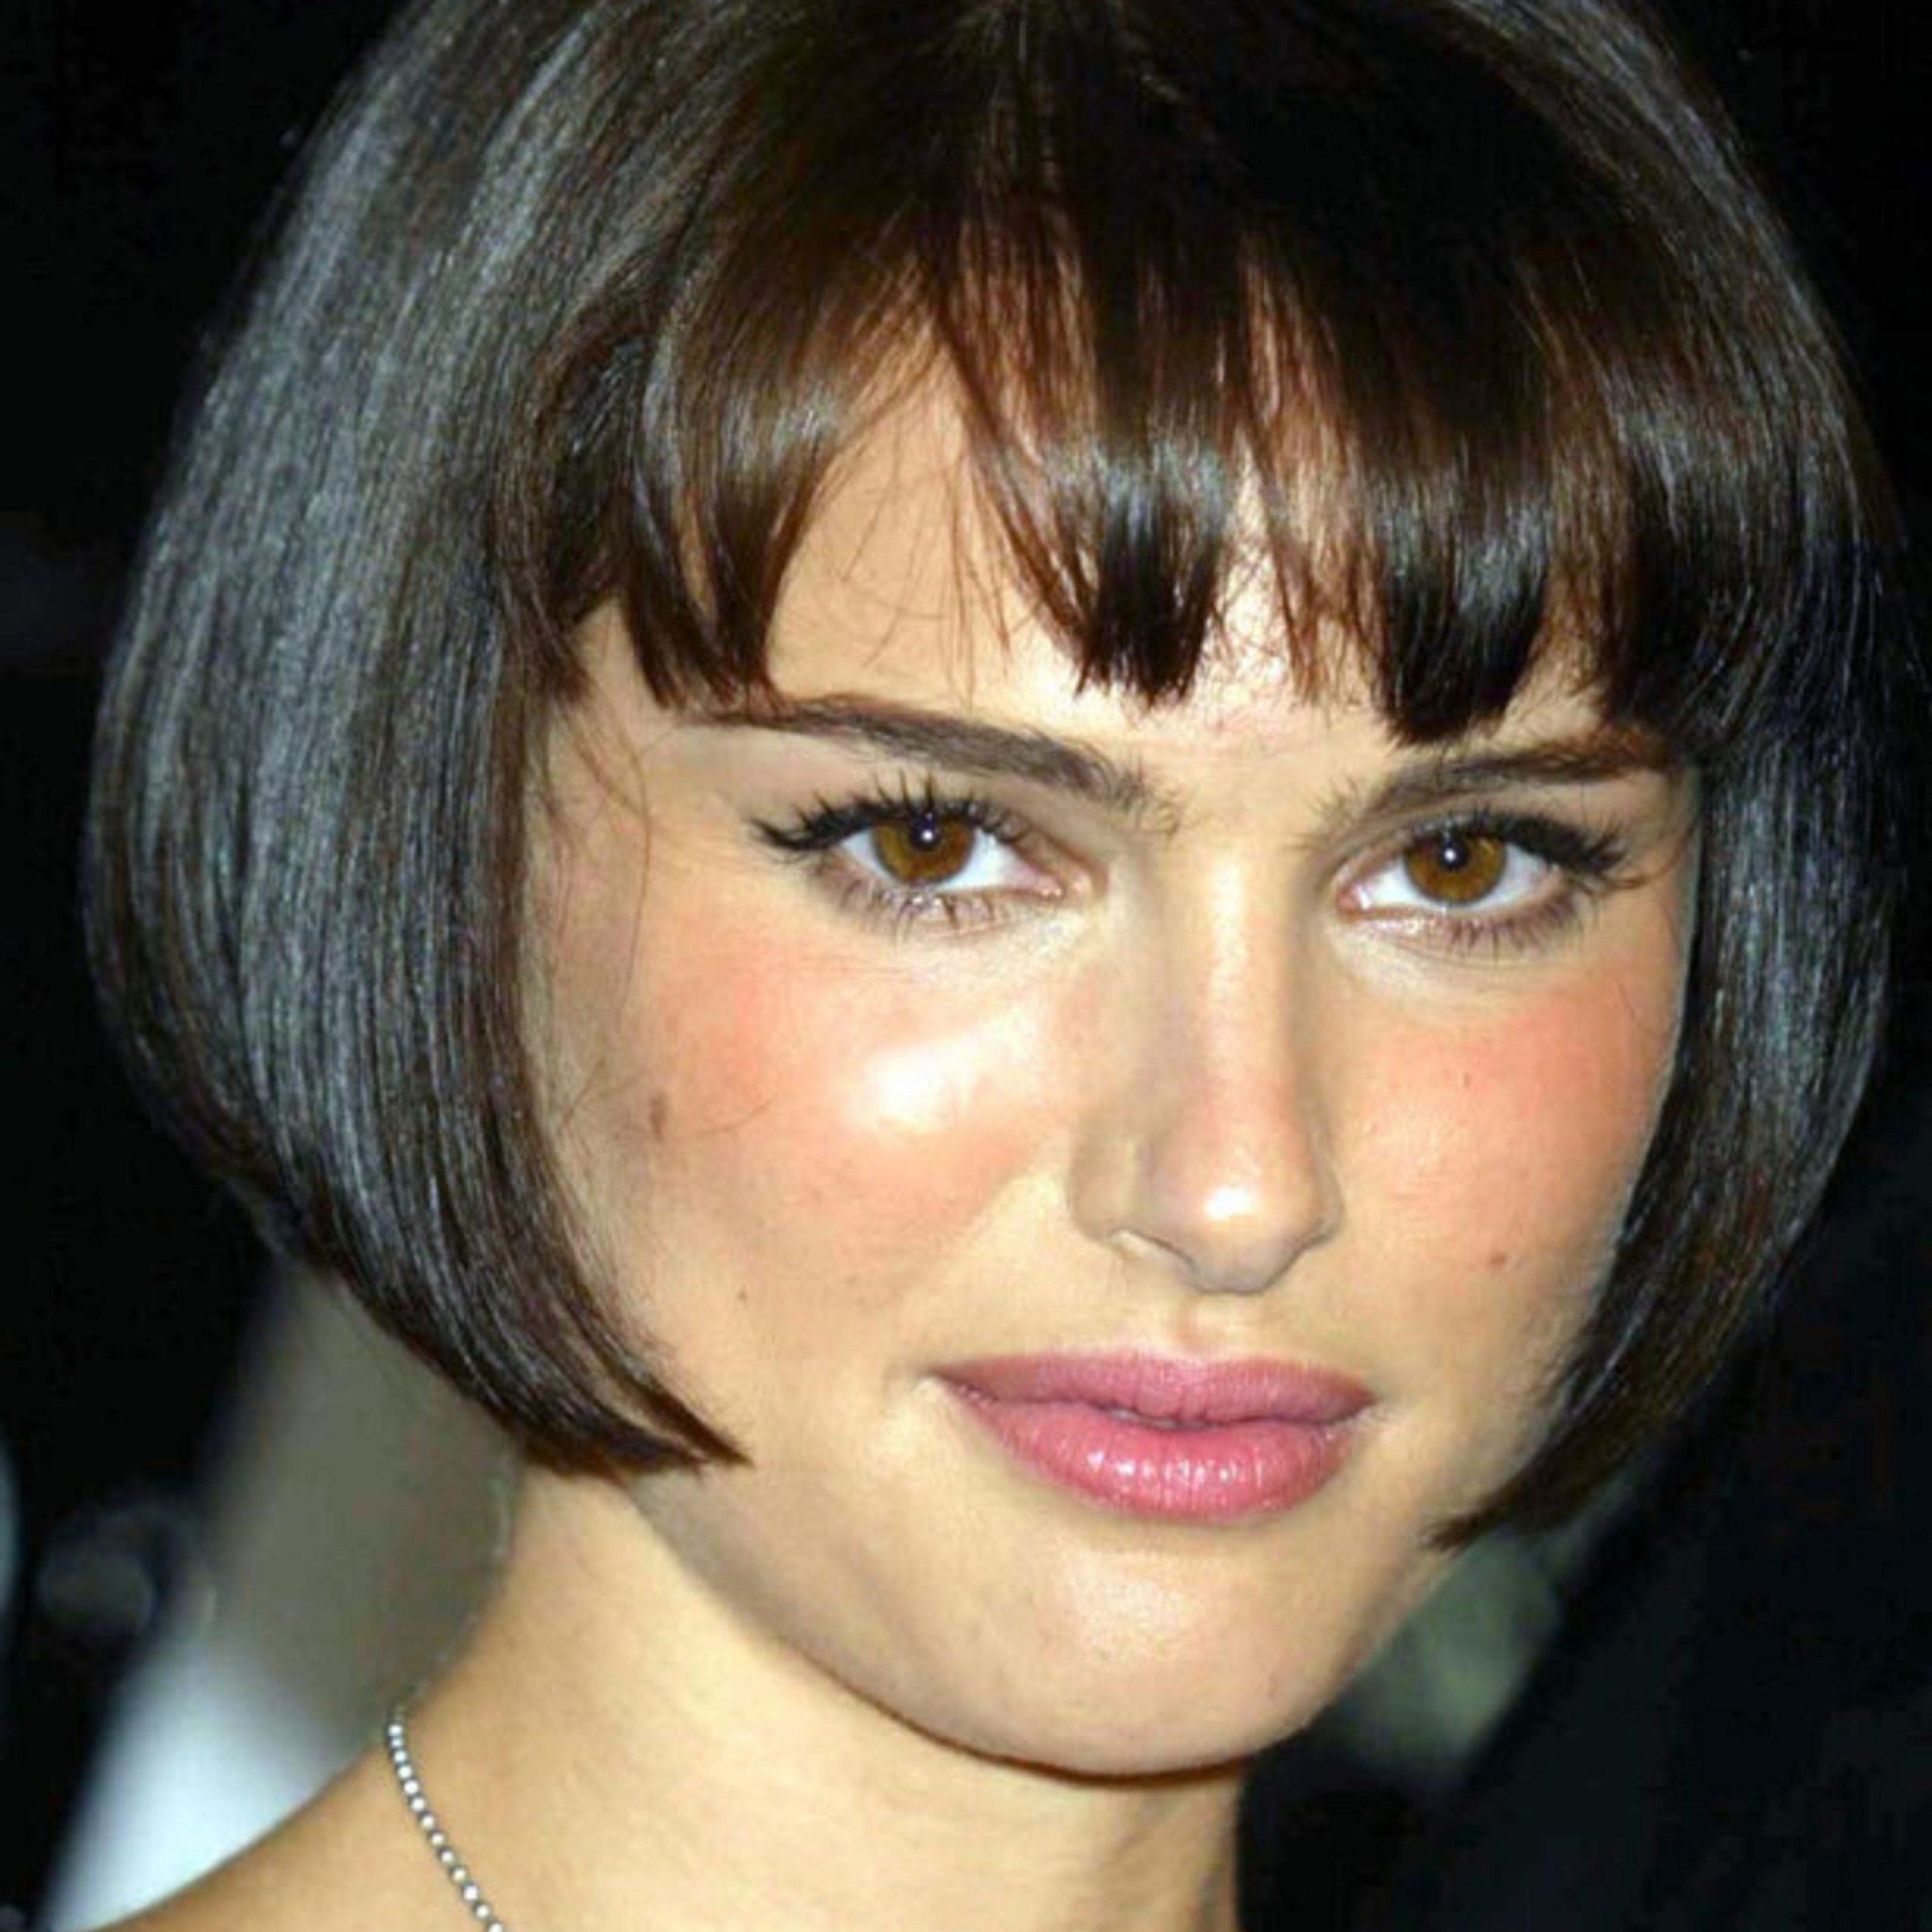 47 Bob Hairstyles For 2019 – Bob Haircuts To Copy This Year Throughout Most Up To Date Short Black Bob Hairstyles With Bangs (View 3 of 20)